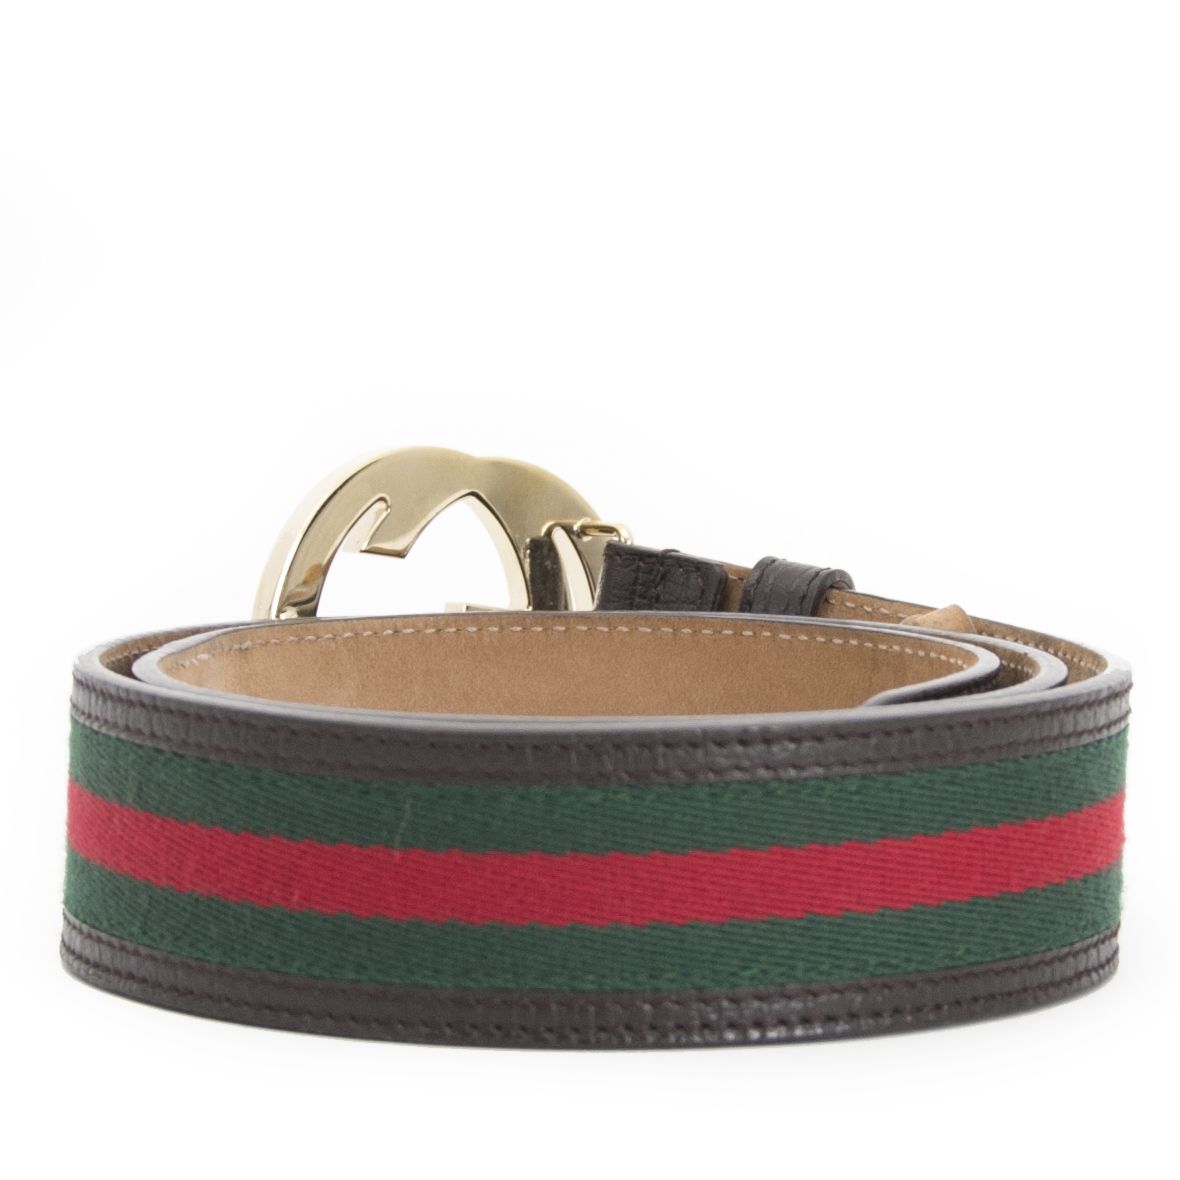 4d5a8f367 ... sale online at Labellov secondhand luxury in Antwerp Are you looking  for Gucci Red Green Belt - size 85